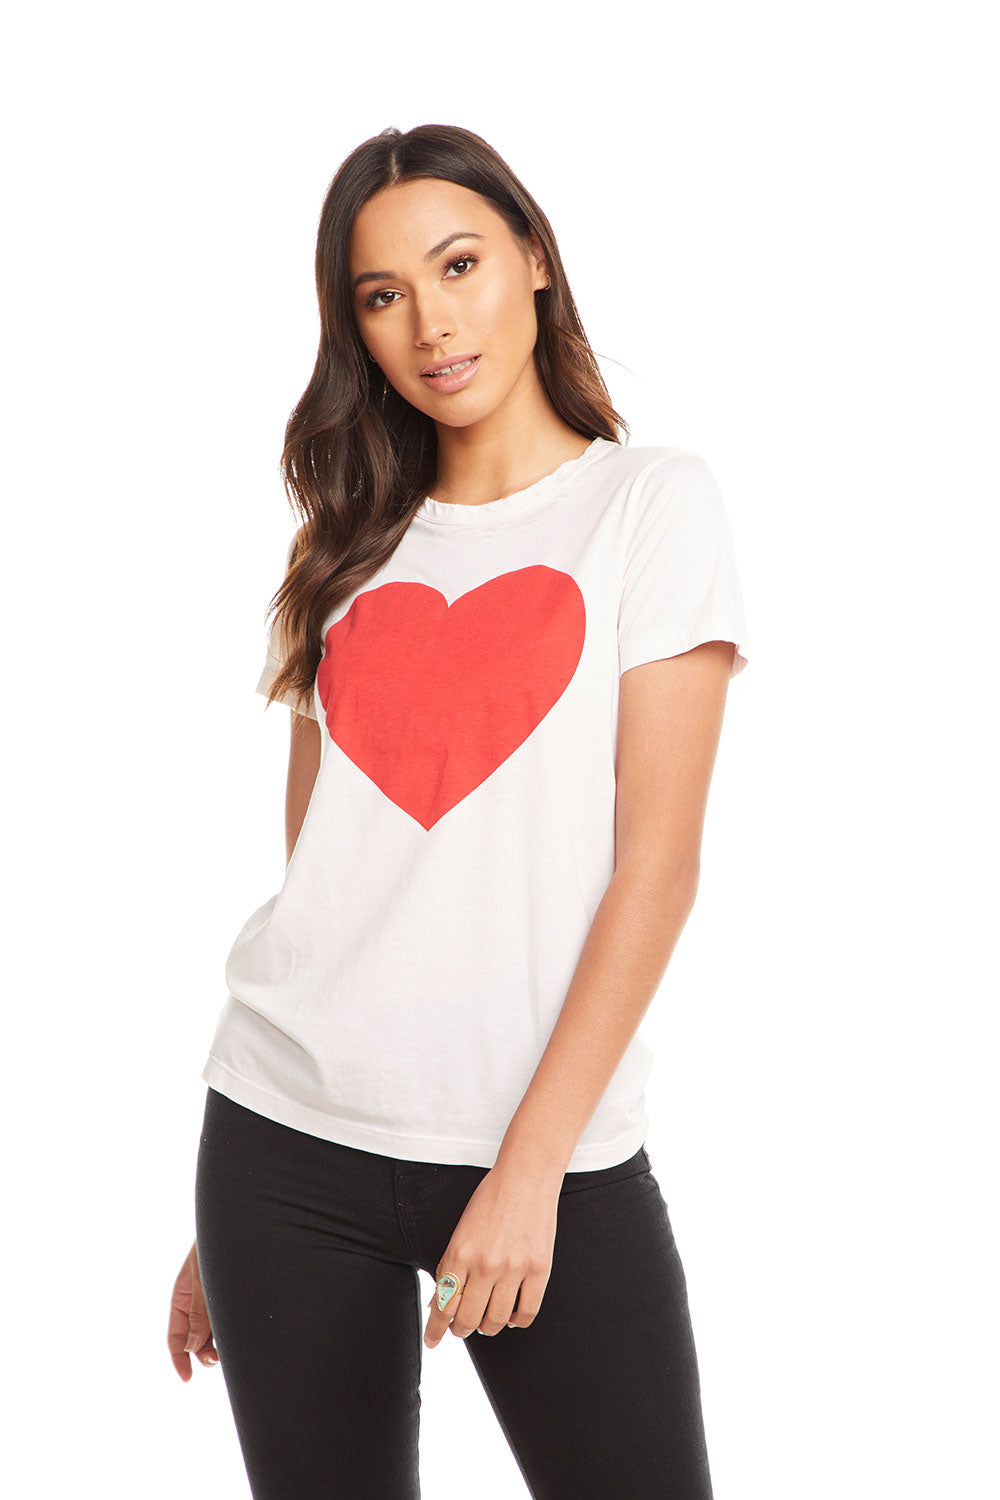 Red Heart, WOMENS, chaserbrand.com,chaser clothing,chaser apparel,chaser los angeles